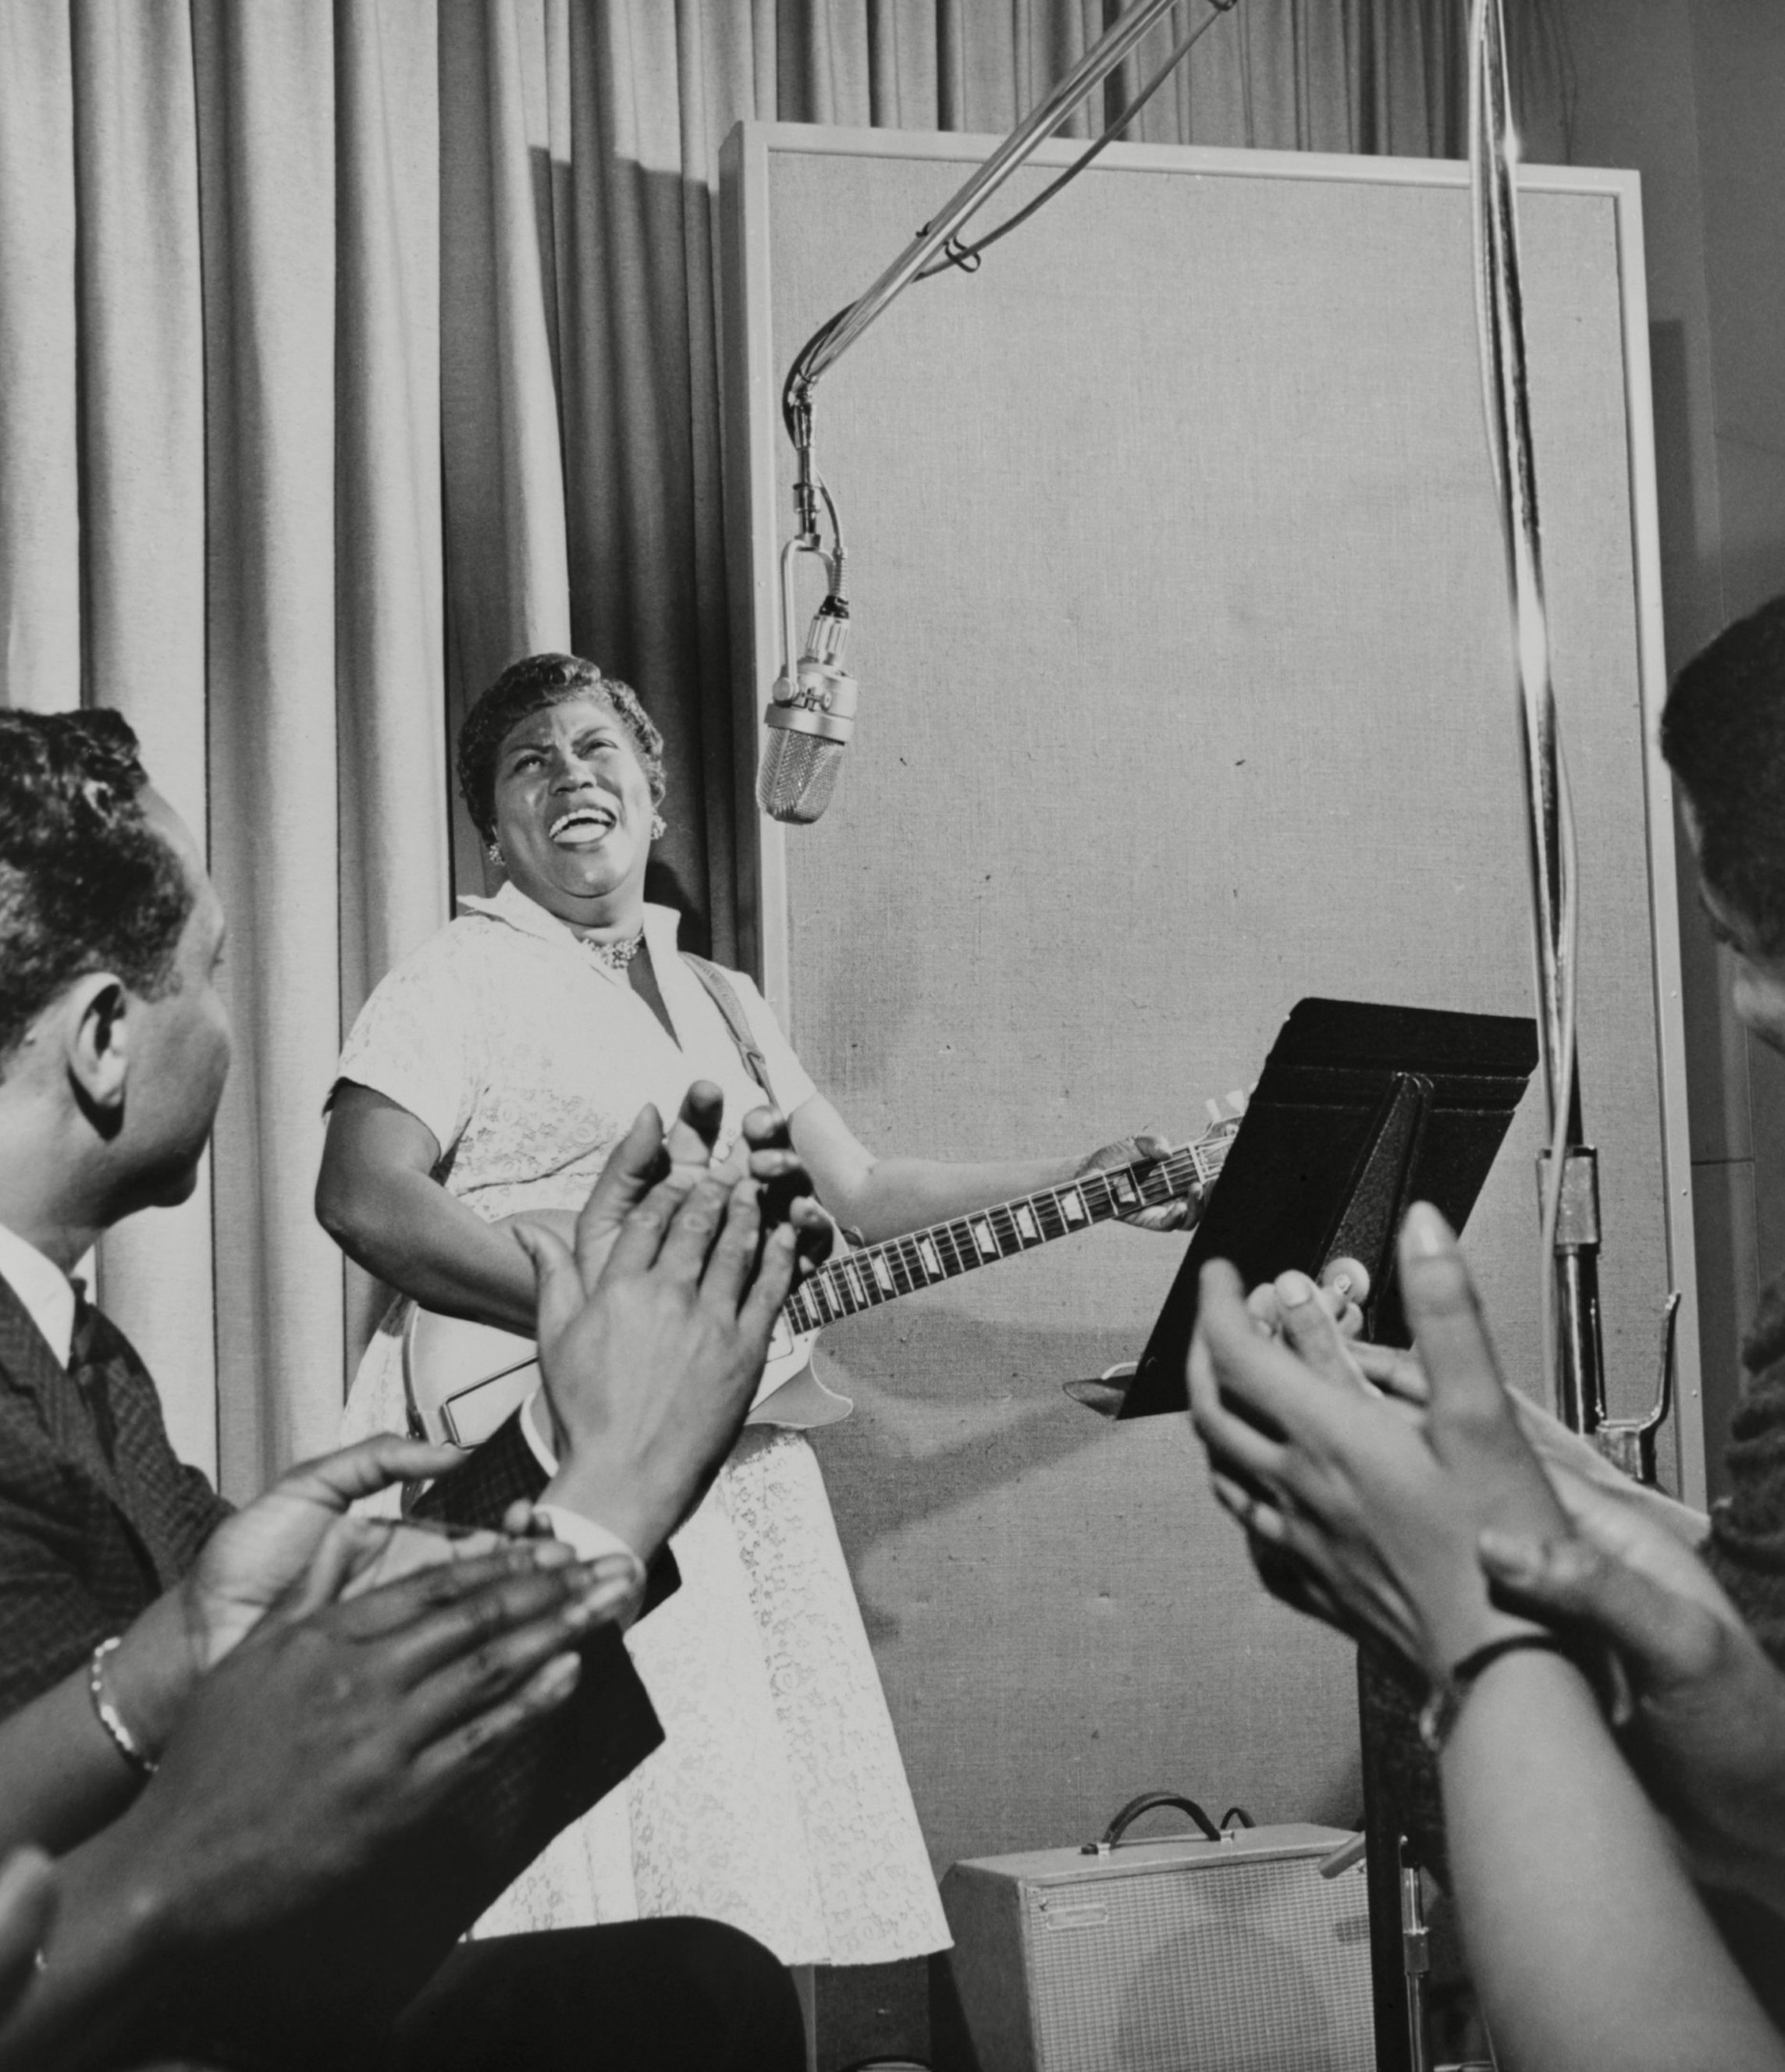 Photo by Everett/Shutterstock (10293662a) Sister Rosetta Tharpe, Godmother of Rock n Roll, performing in an MGM studio in 1961. Historical Collection